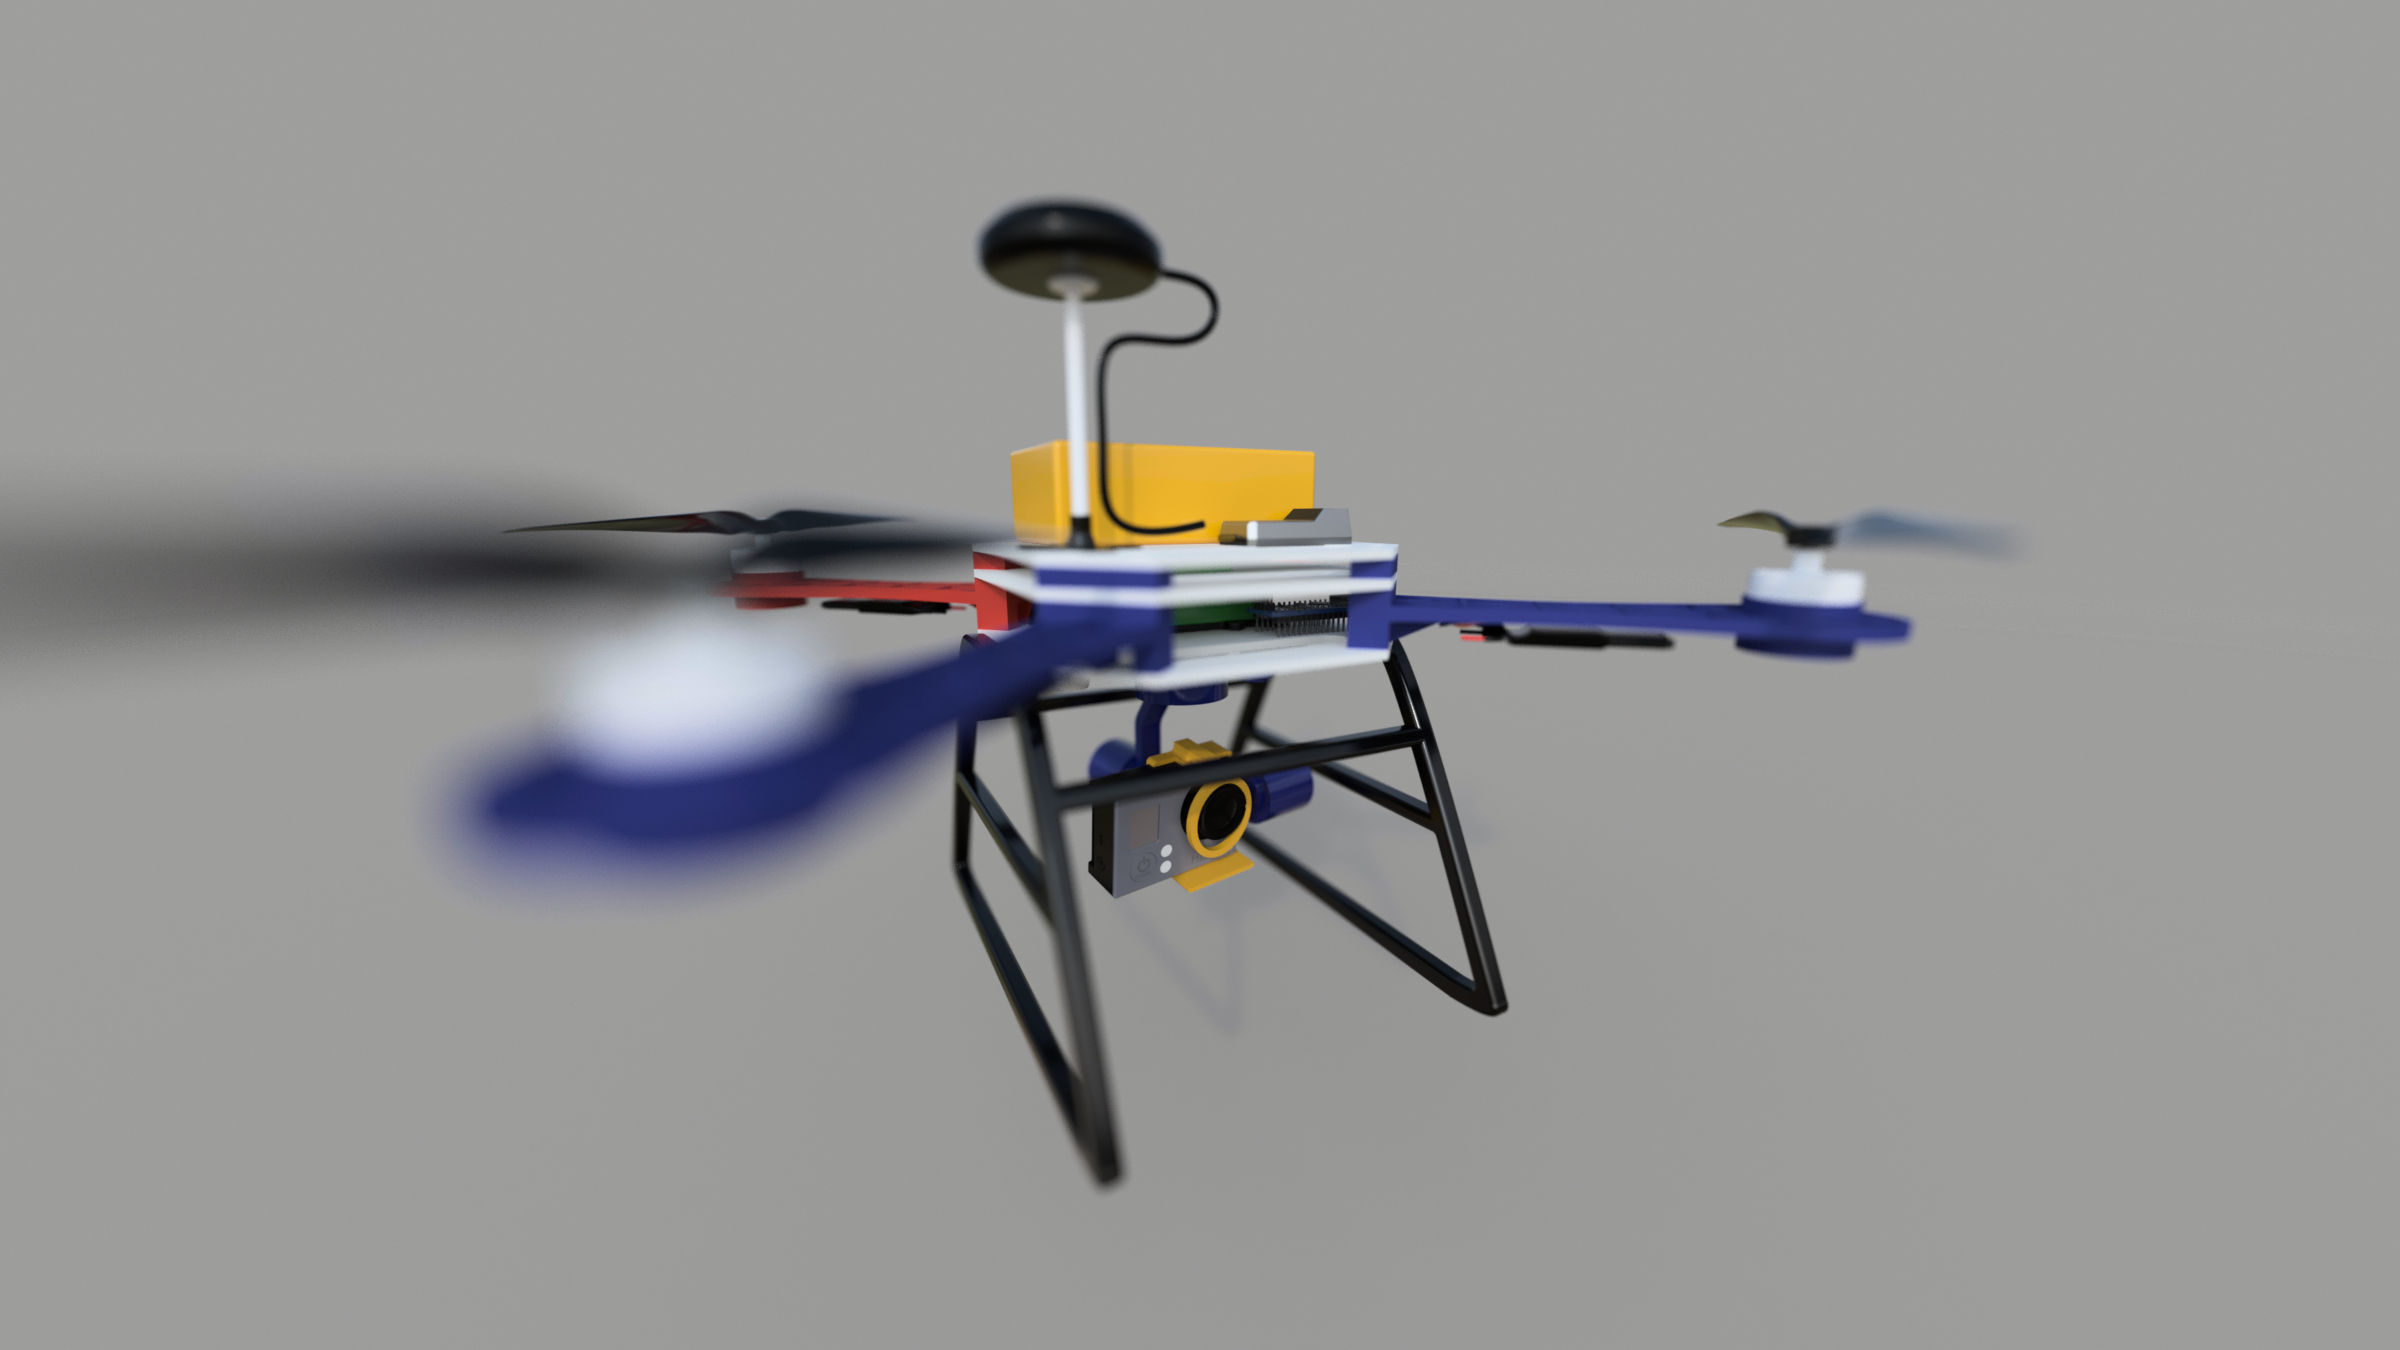 Dron-2018-jan-09-06-34-15pm-000-customizedview6145223967-jpg-3500-3500